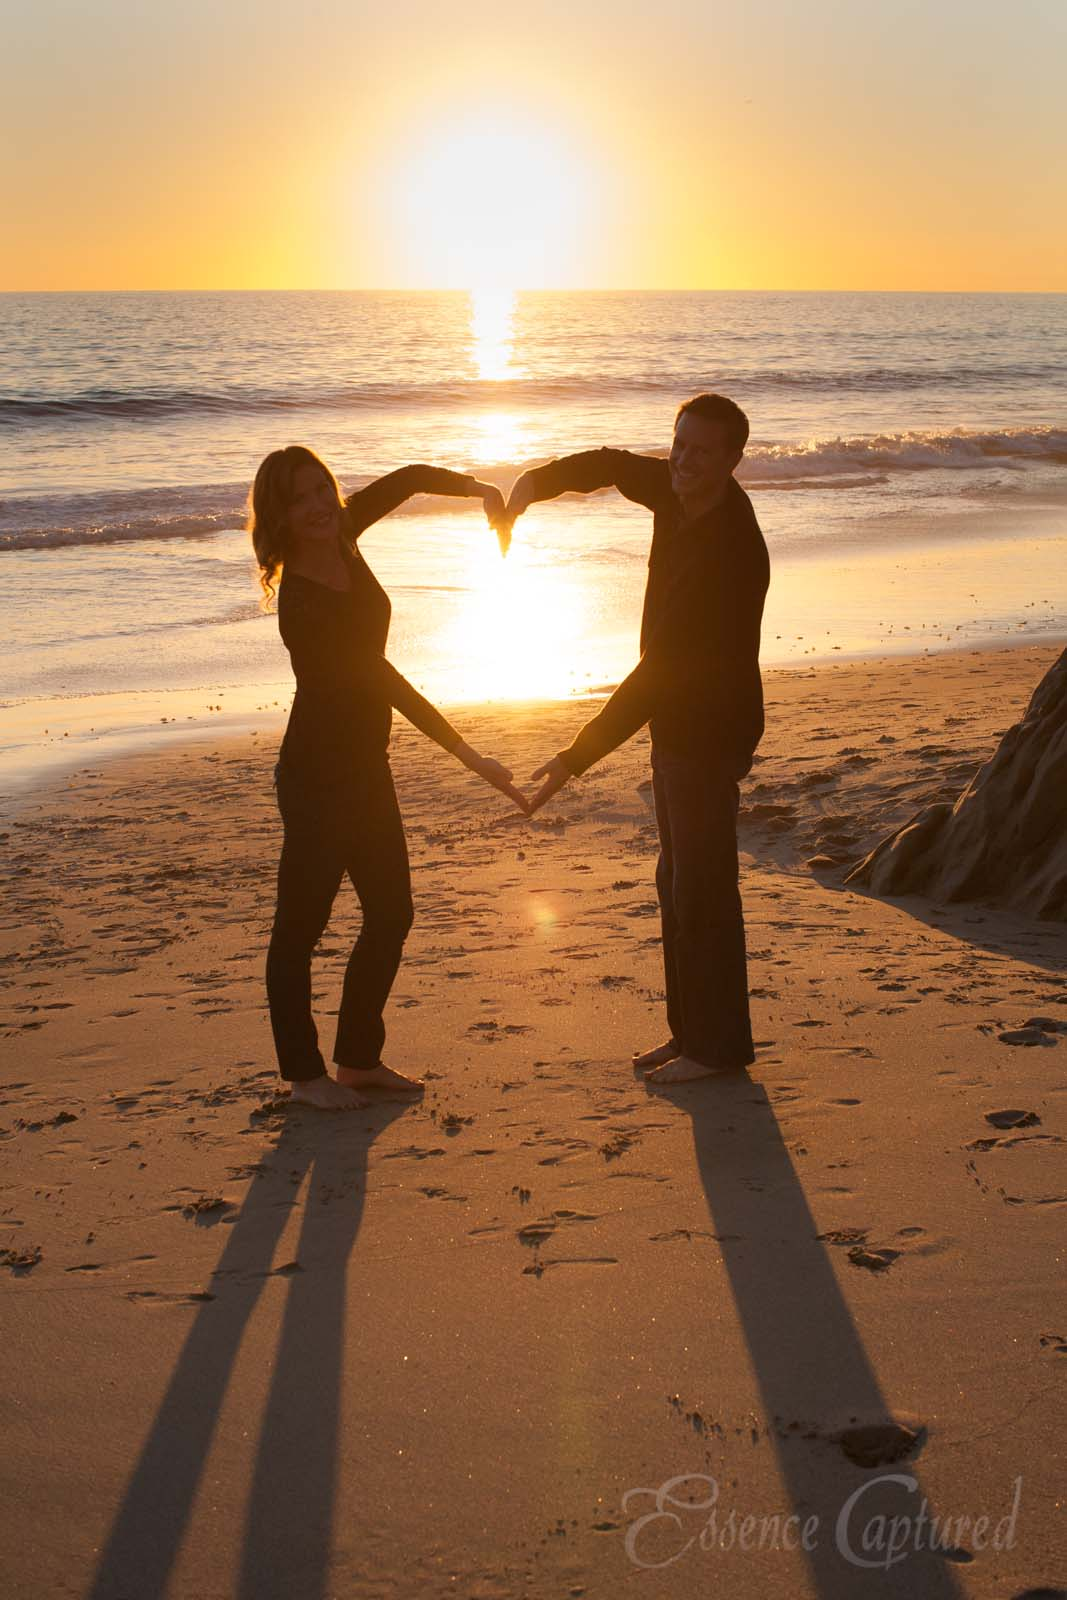 silhouette heart shape made by couples arms at sunset at beach